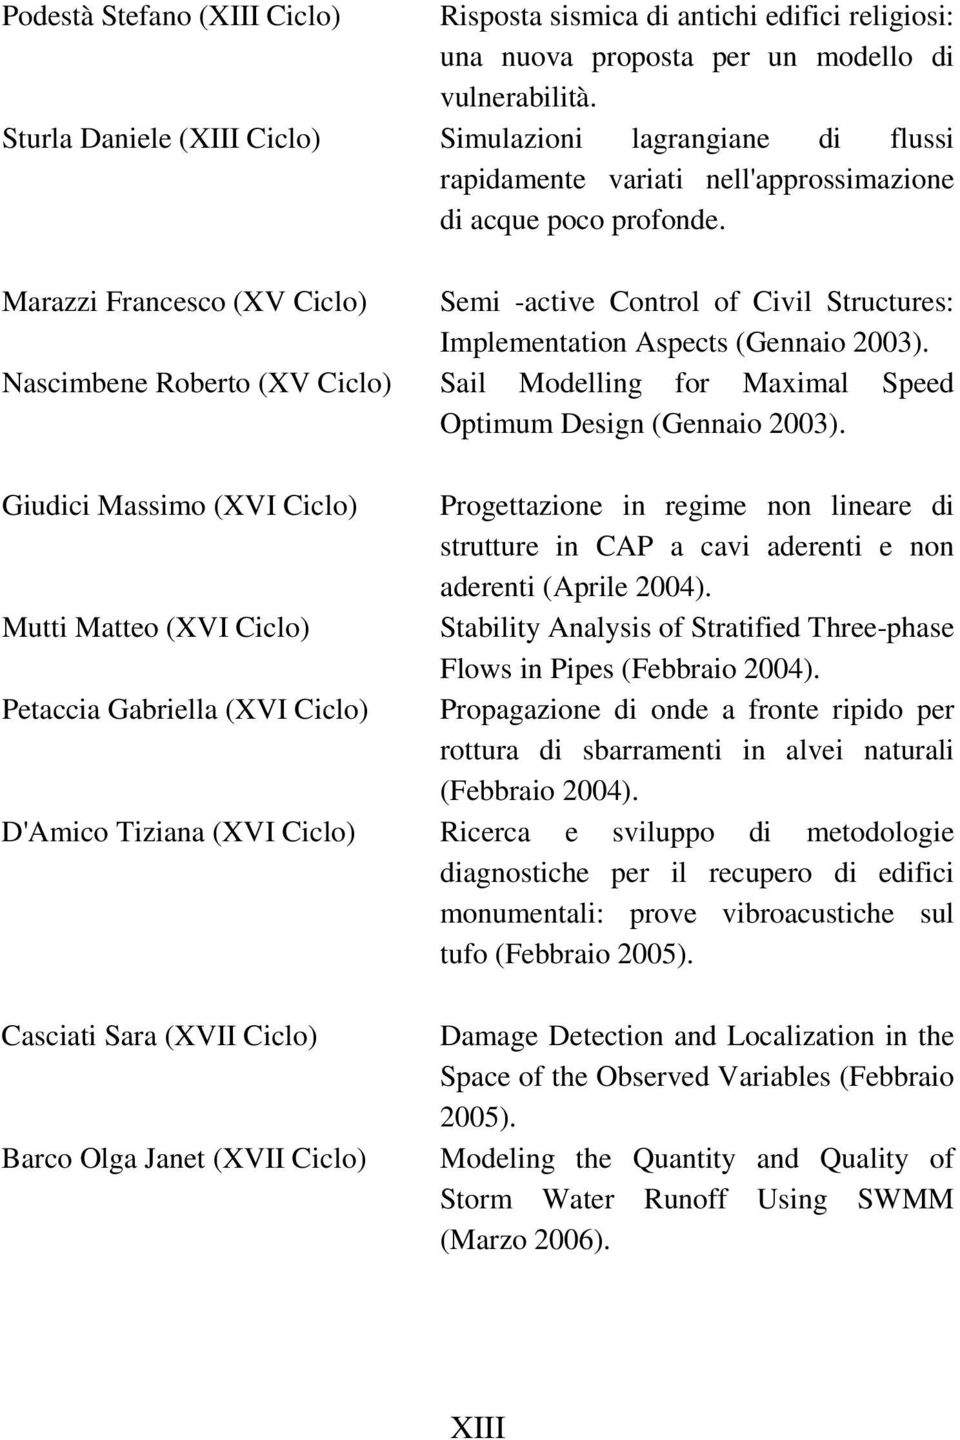 Marazzi Francesco (XV Ciclo) Semi -active Control of Civil Structures: Implementation Aspects (Gennaio 2003).